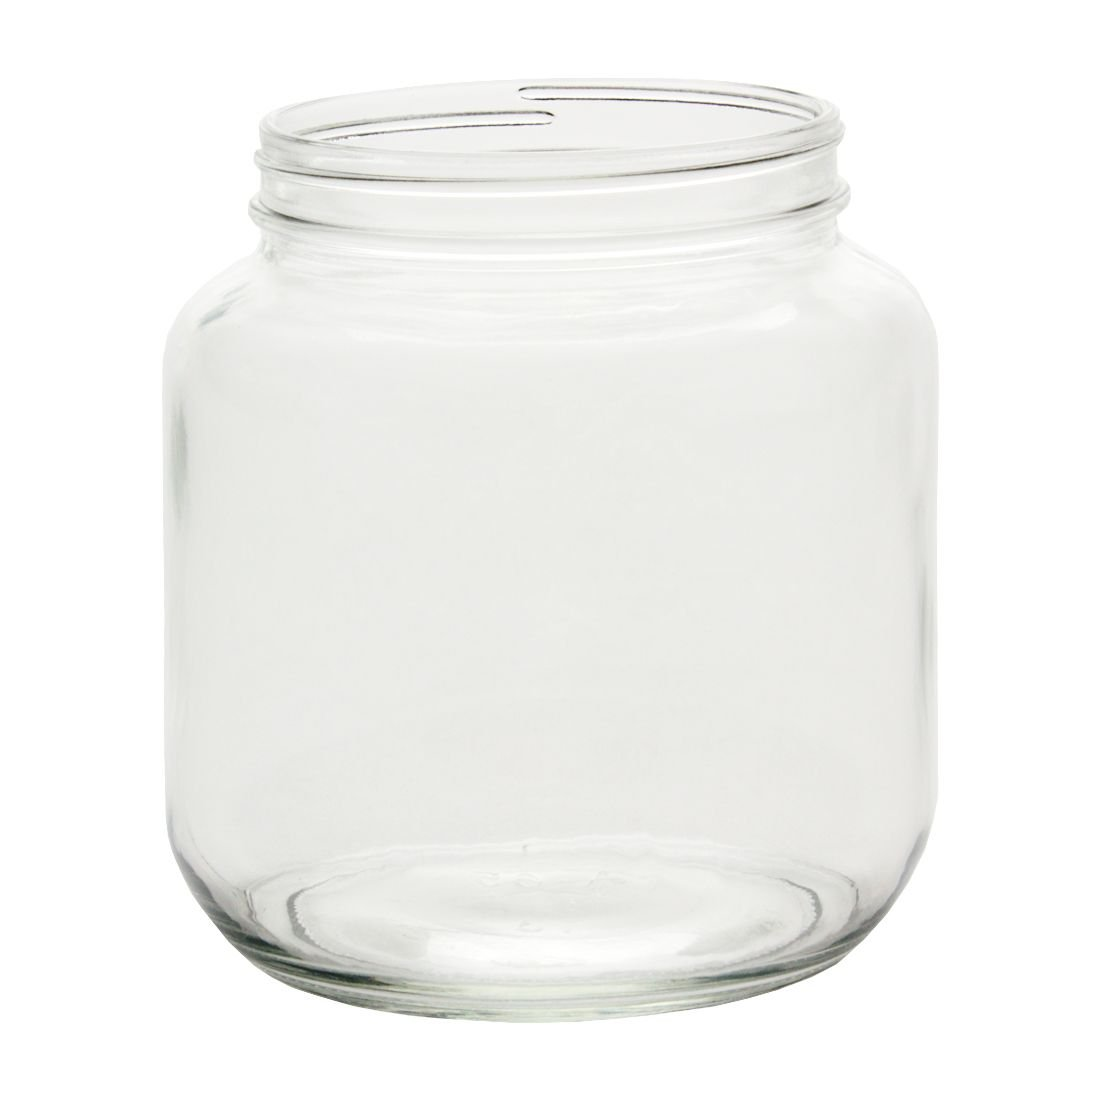 North Mountain Supply 1 /2ガロンガラスwide-mouth 110 CT Fermentation/Canning Jar with Lid 1/2 Gallon ゴールド NMS A0064-00 - 6 Gold Metal B077MRB6P3  Gold Metal Lid